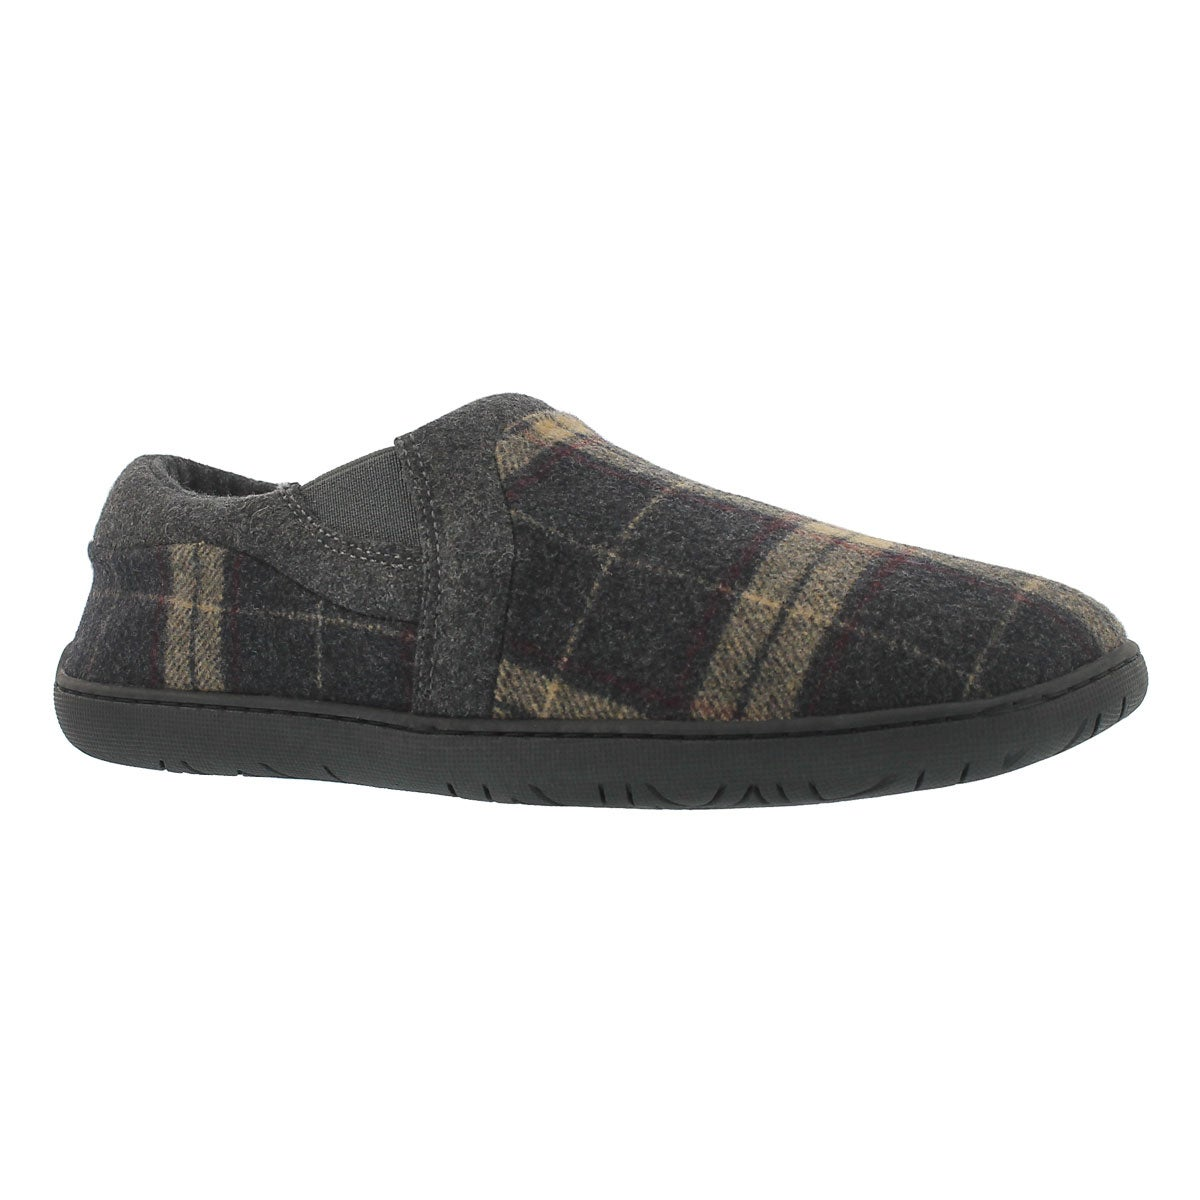 Men's JAMES brown plaid closed back slippers